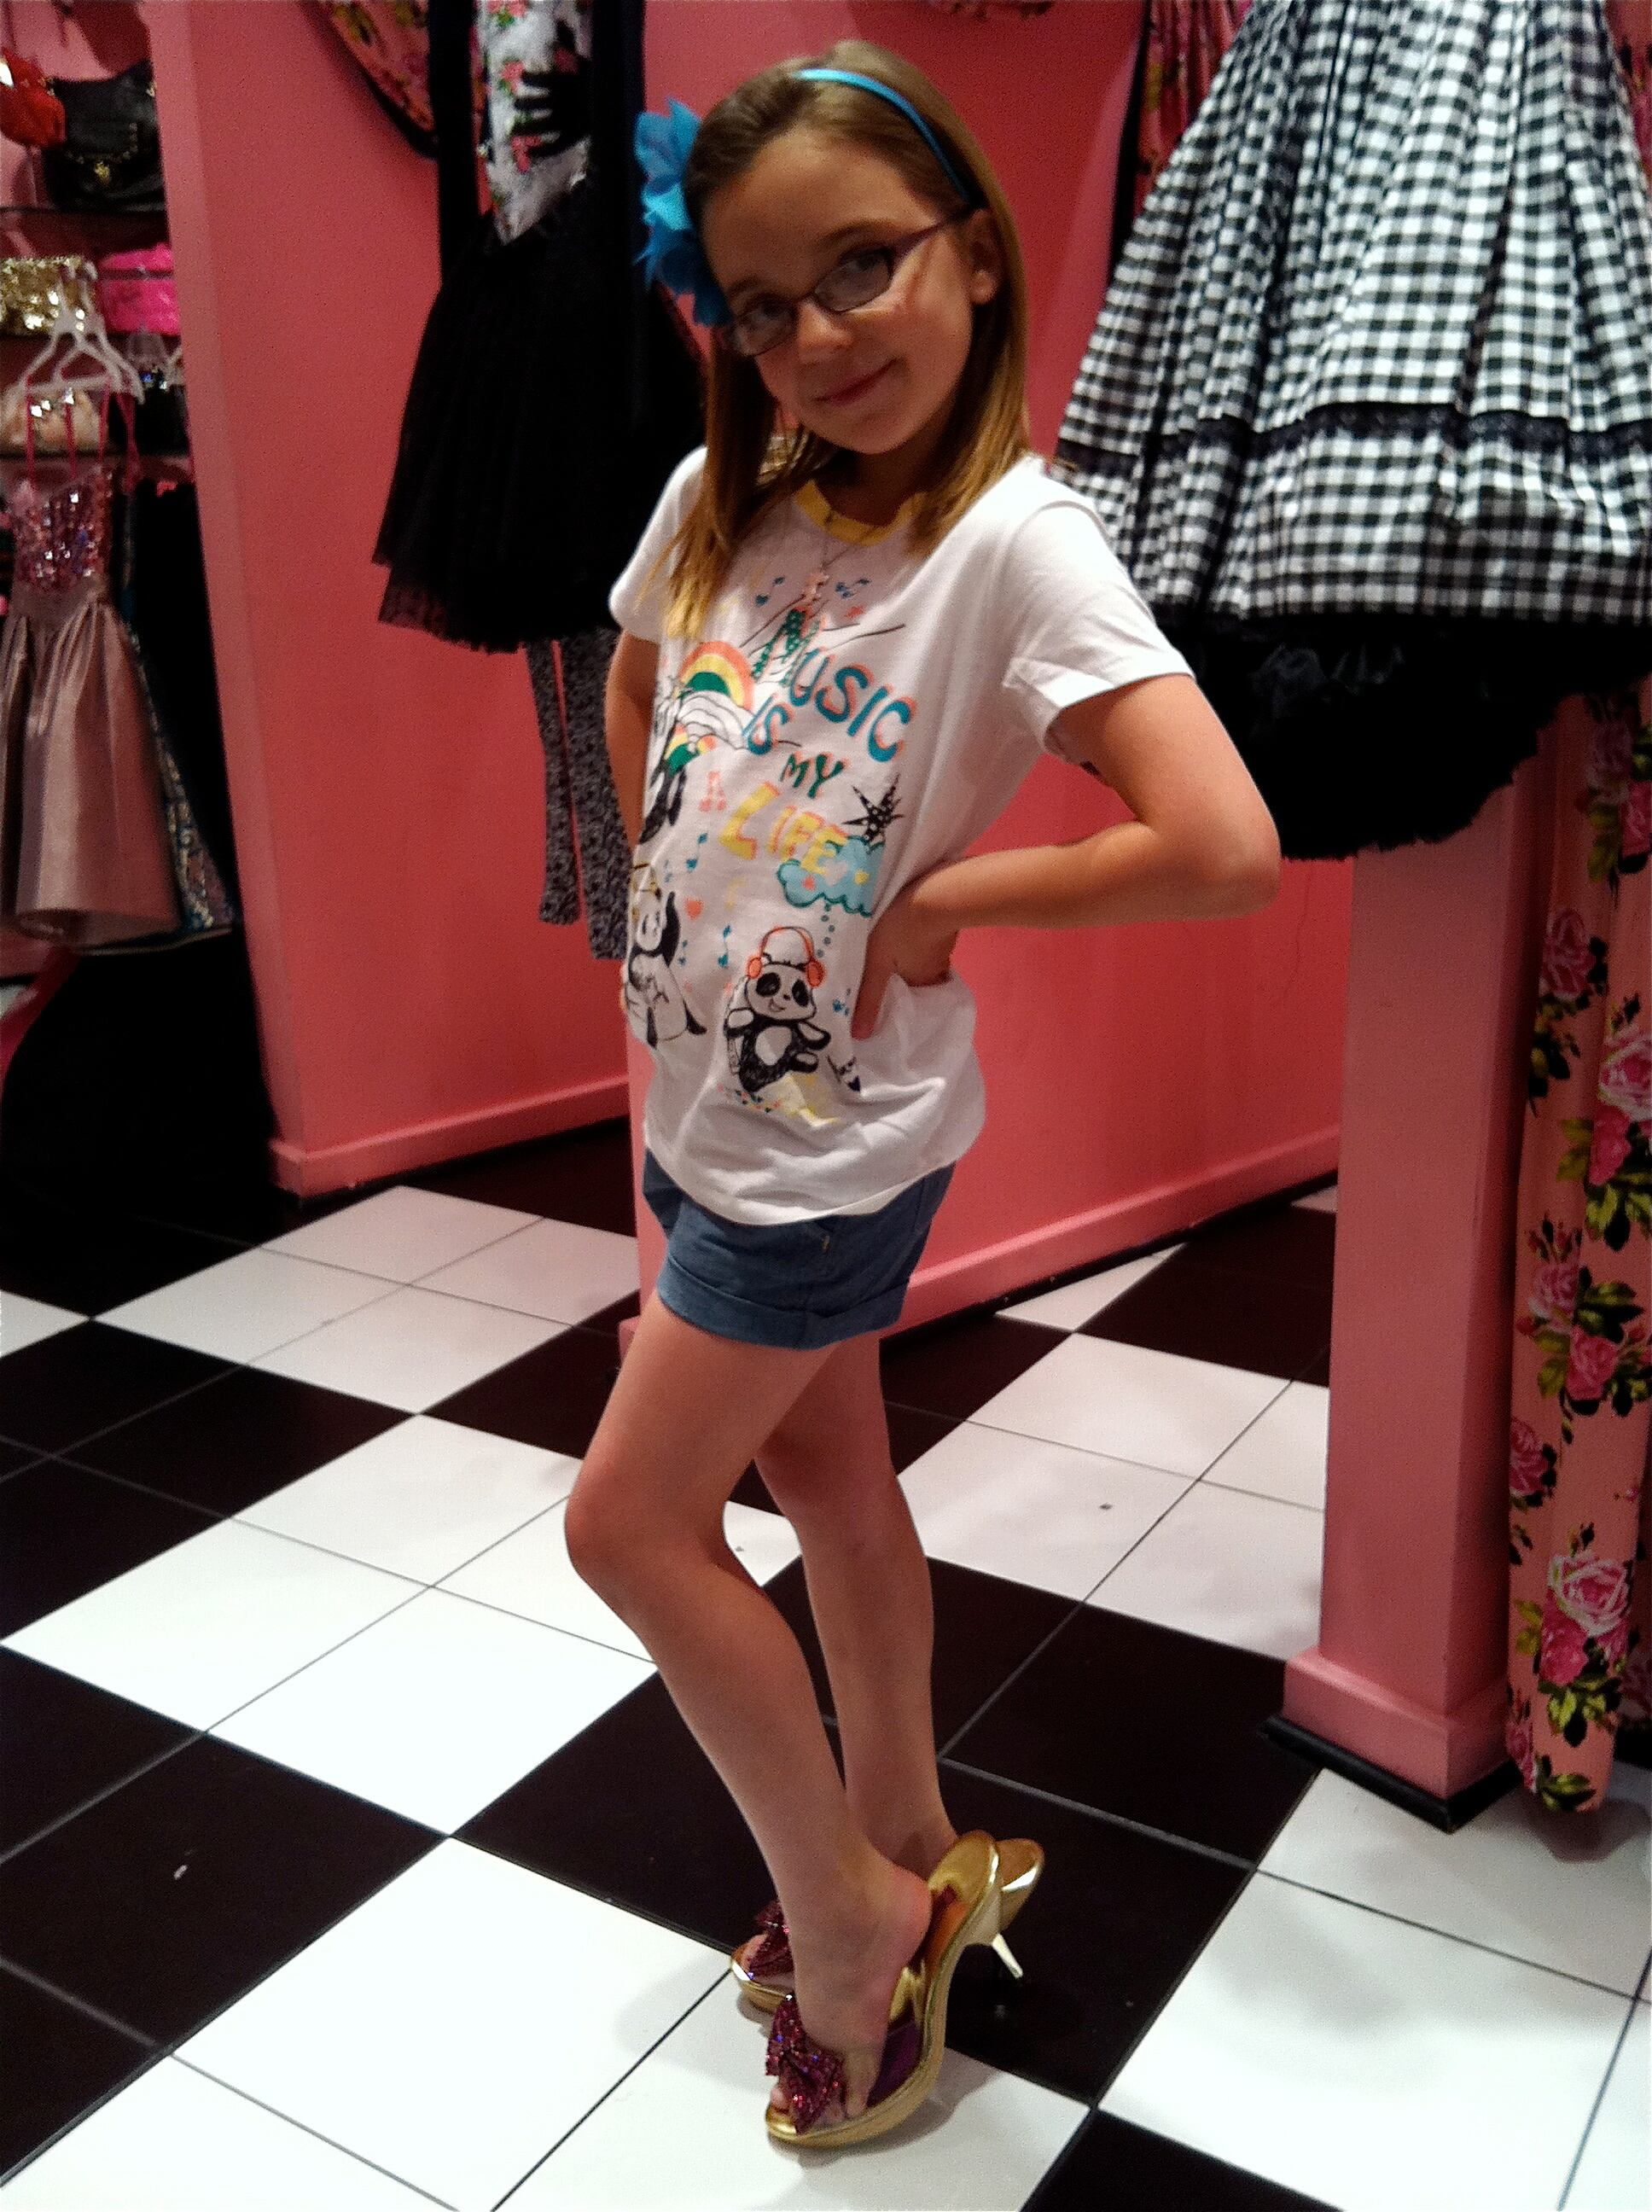 Kassidy Tryin' on Heels in Vegas